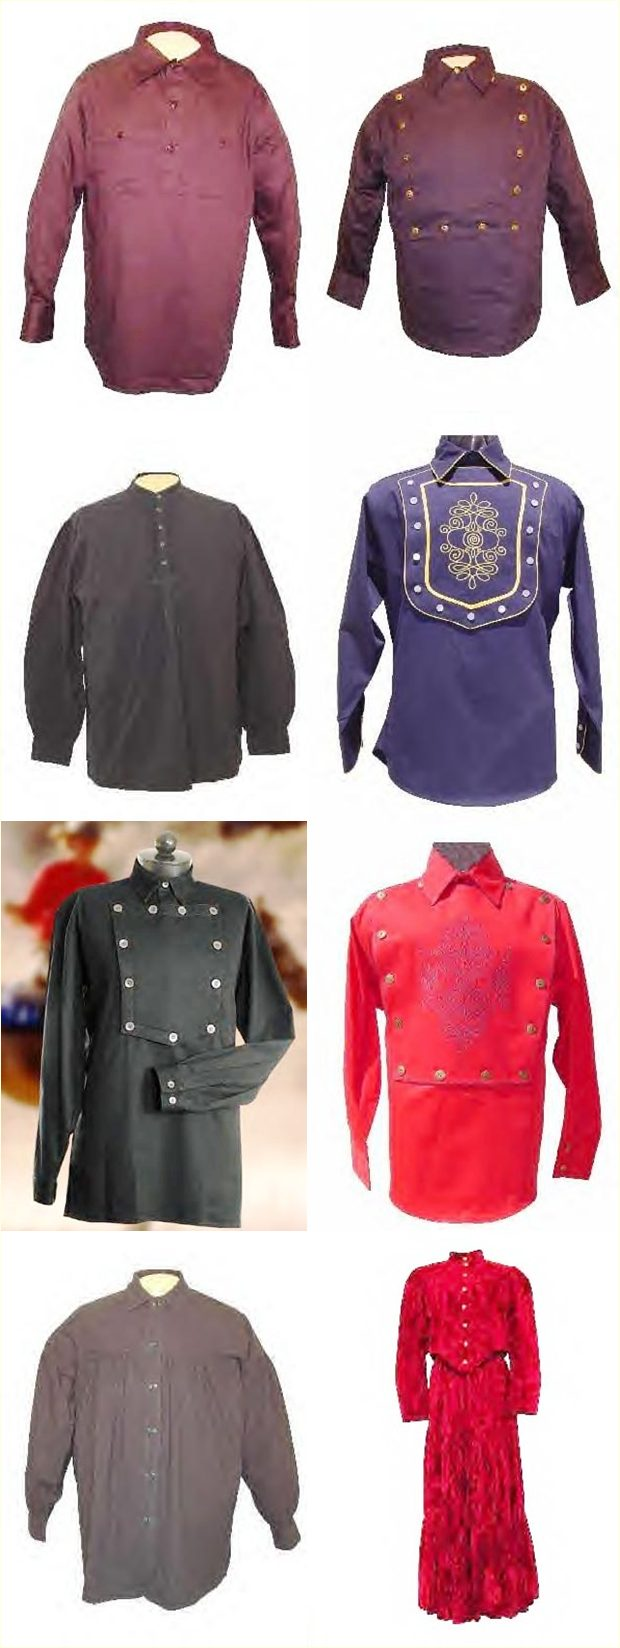 28Western_Indian_War_Issue_Shirt_69.95_oldtradingpost-tile